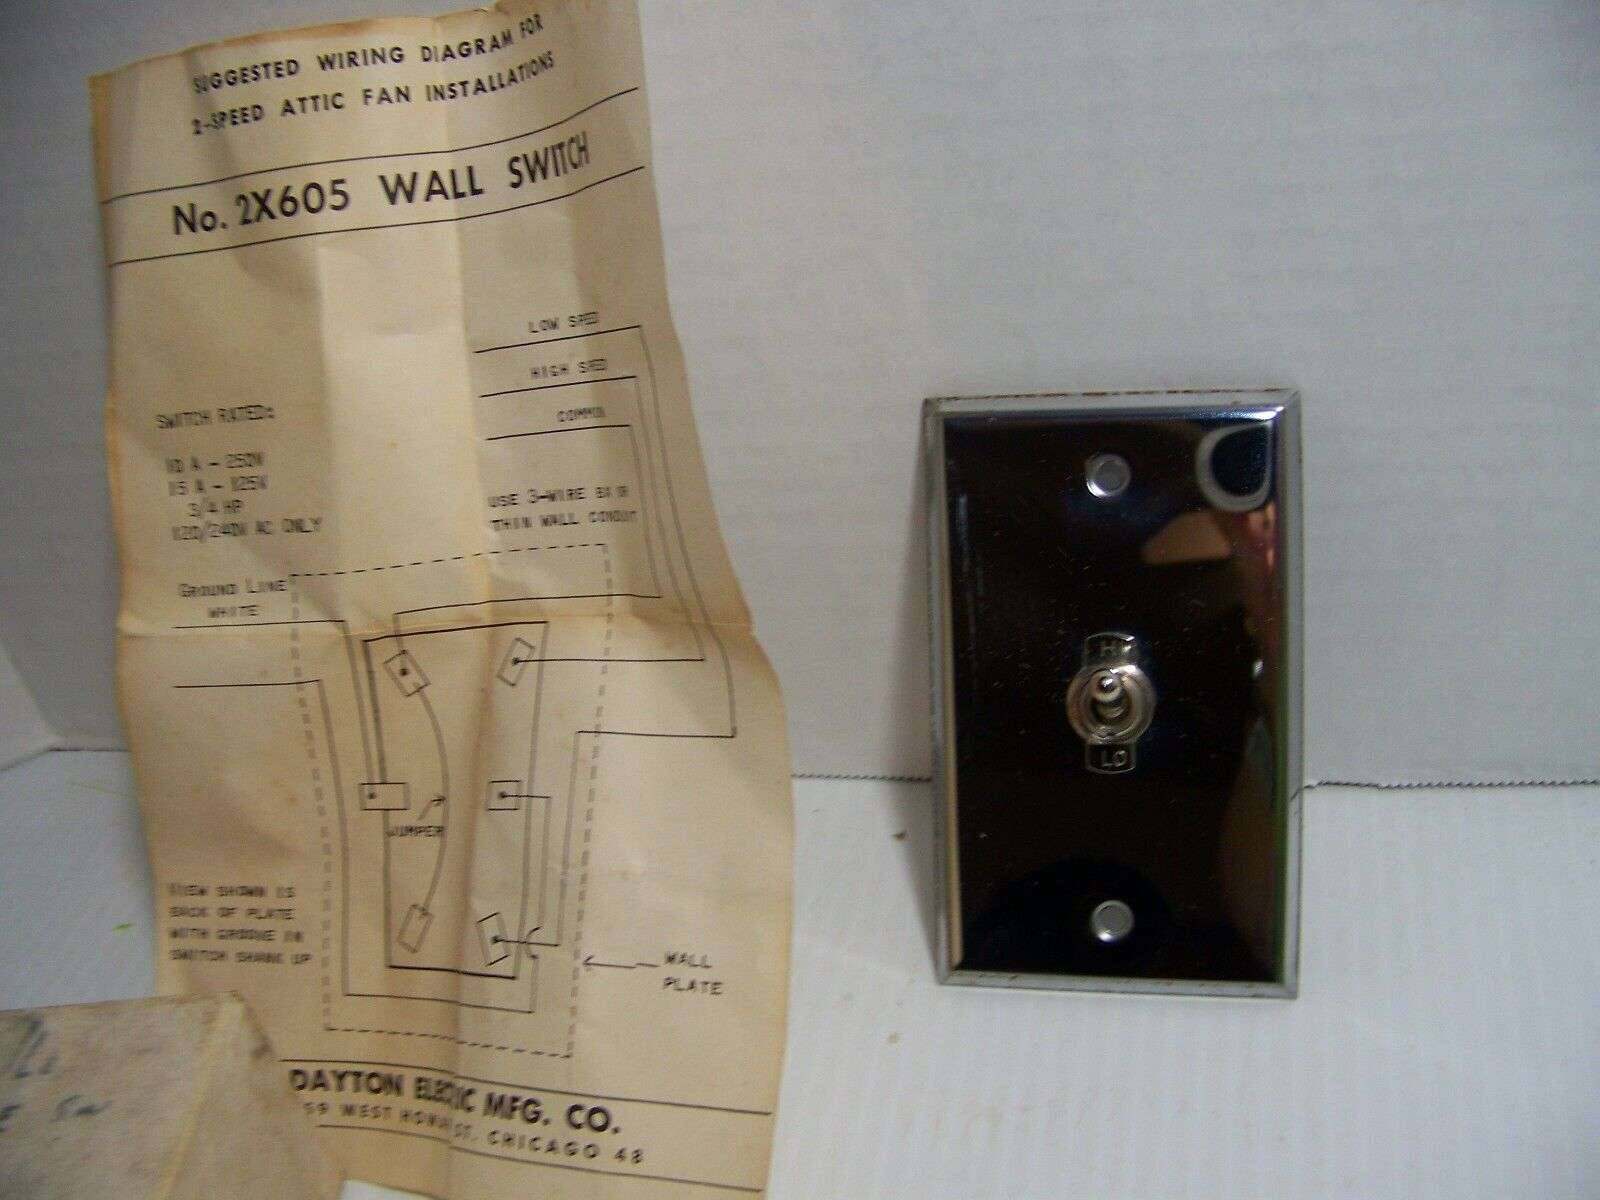 Dayton Hi-LO Toggle Control Switch Built-In Wall Plate 2x605 NEW - $9.99